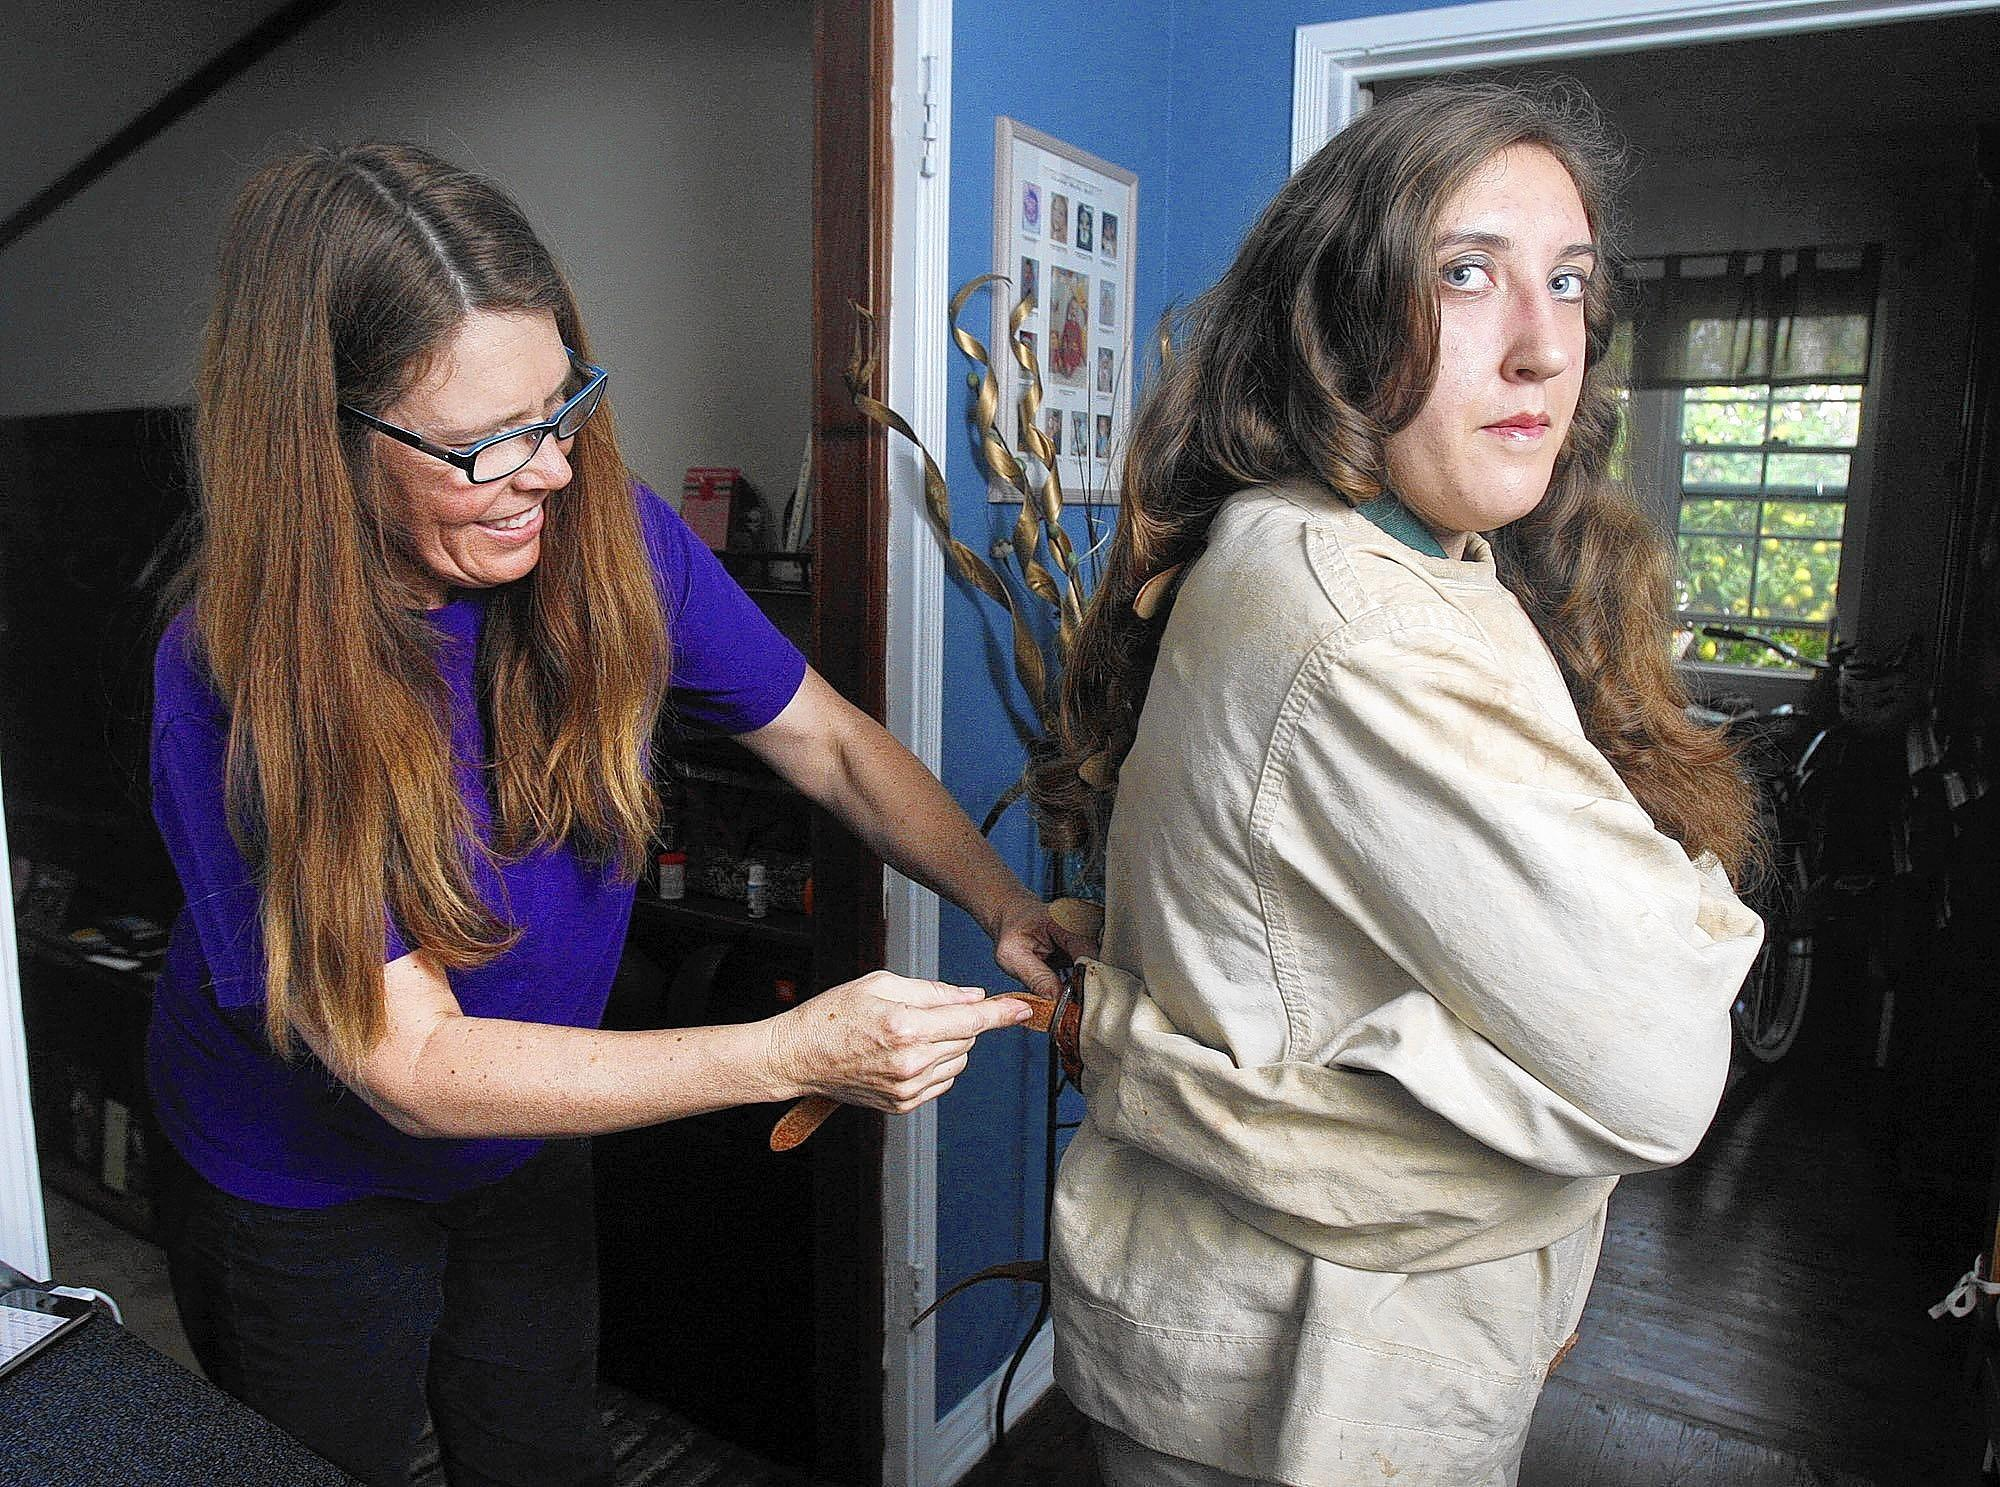 London Ruff, 17, of Burbank,is secured into a straight jacket by her mom, Wendy, in her home on Monday, March 3, 2014. Professionals are mentoring Ruff in the Magic Castle program. She will perform at Providence High School to raise money for the school. One of her magic specialties is escaping from a straight jacket.